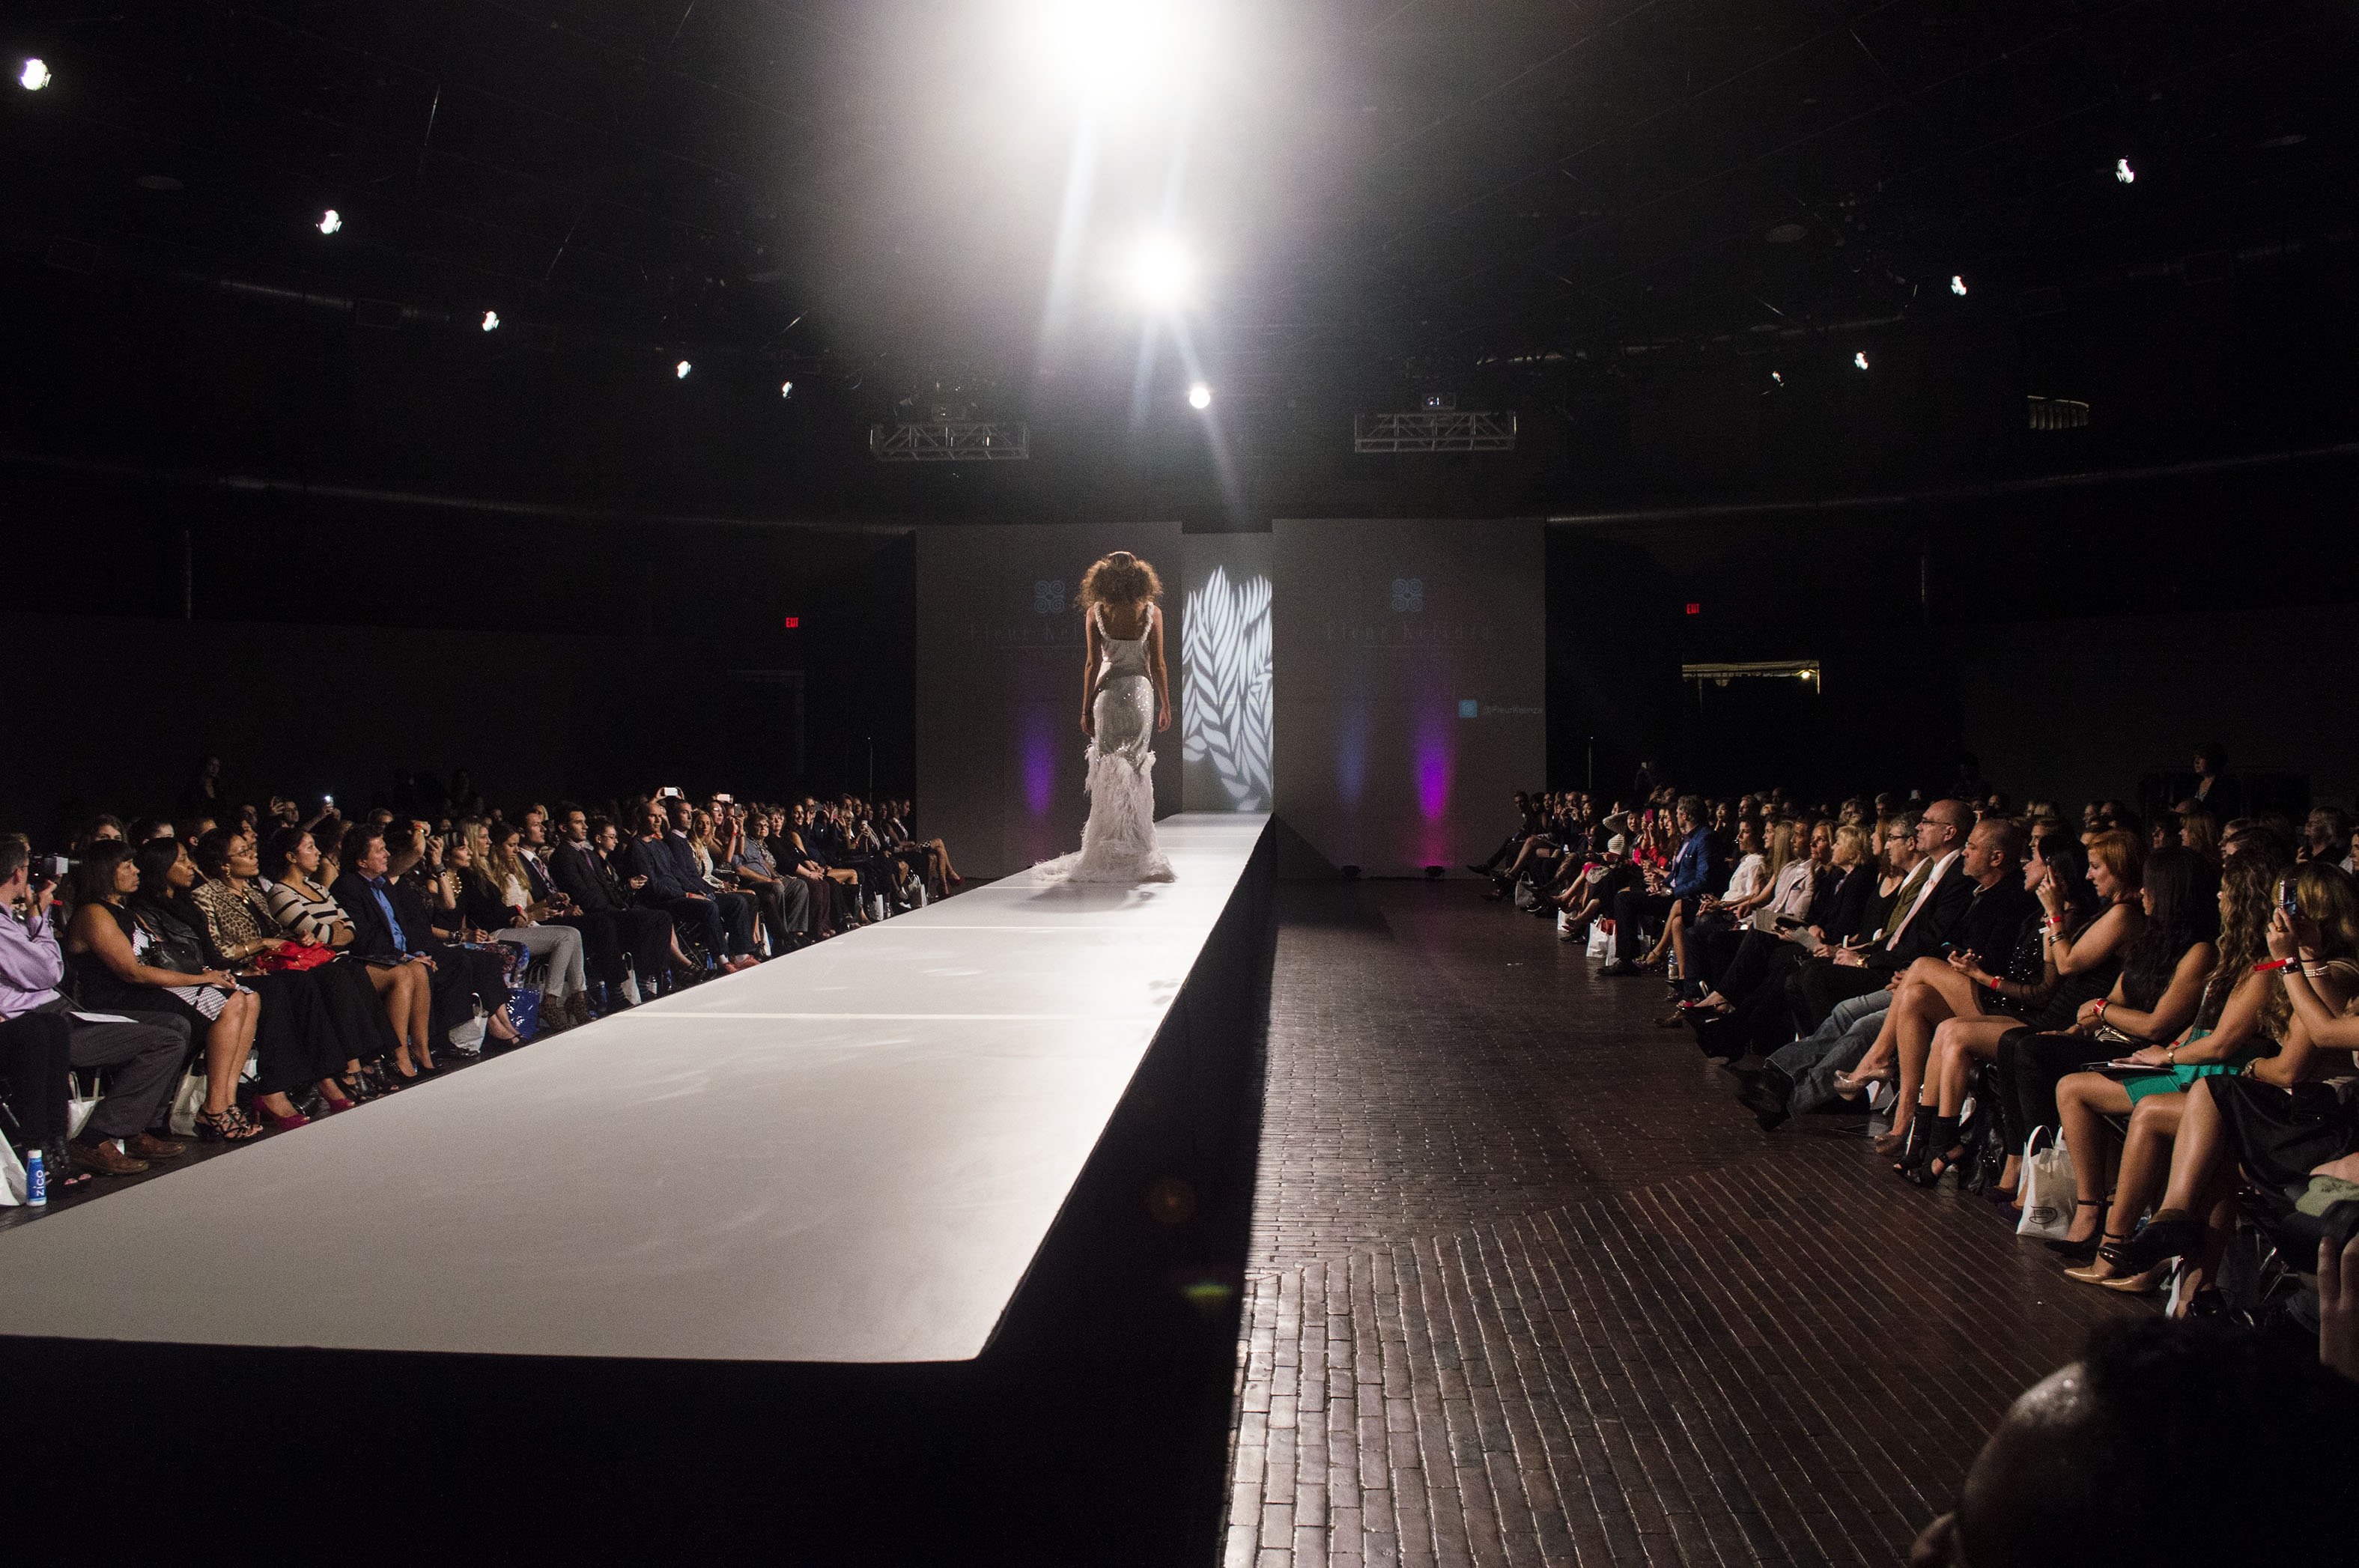 John Farr Lighting Design Goes Beyond Runway At Fashion Show Fashion runway lighting design